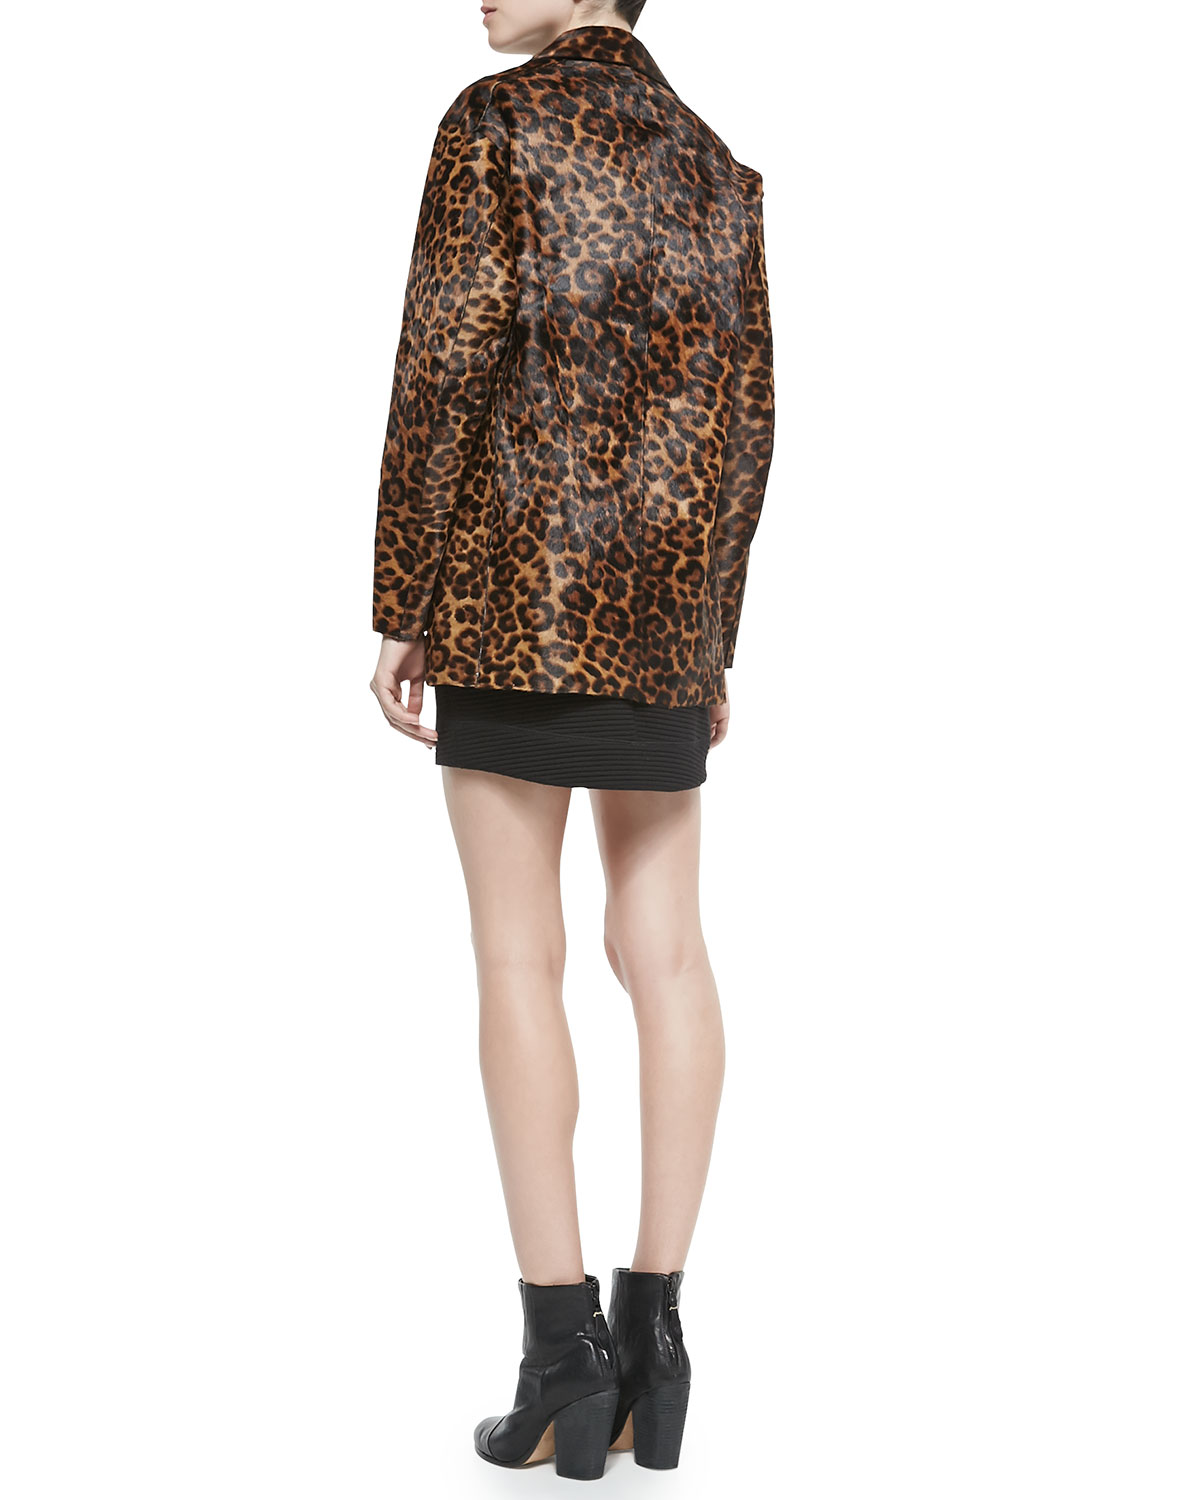 Rag & Bone Sigrid Leather Leopard-Print Coat, Fernanda Sleeveless Cutout-Back Top & Sloane Ribbed Mini Skirt